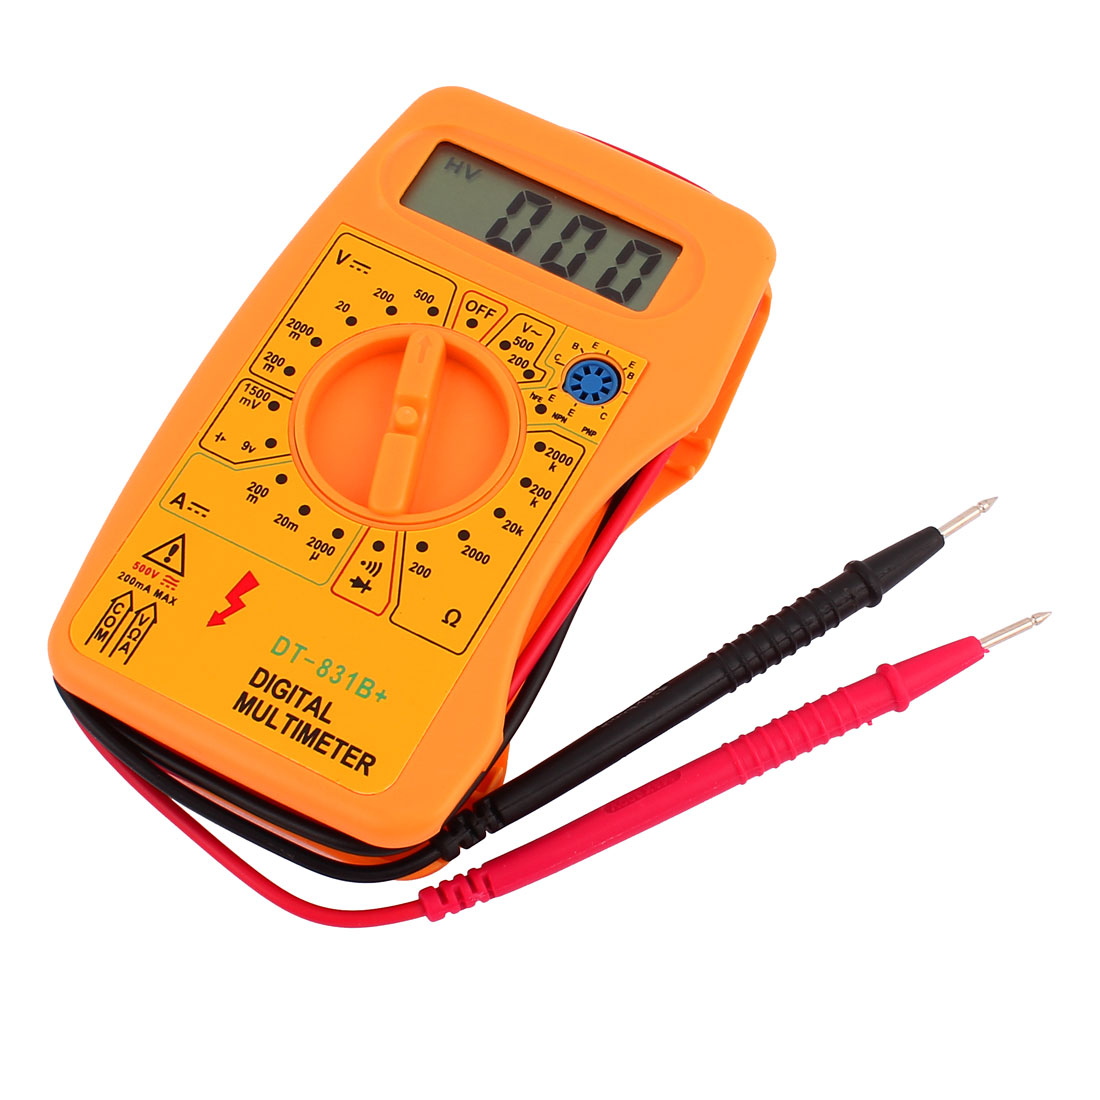 DT831B LCD Display Digital Multimeter AC DC Voltmeter Amp/Ohm/Volt Tester Orange